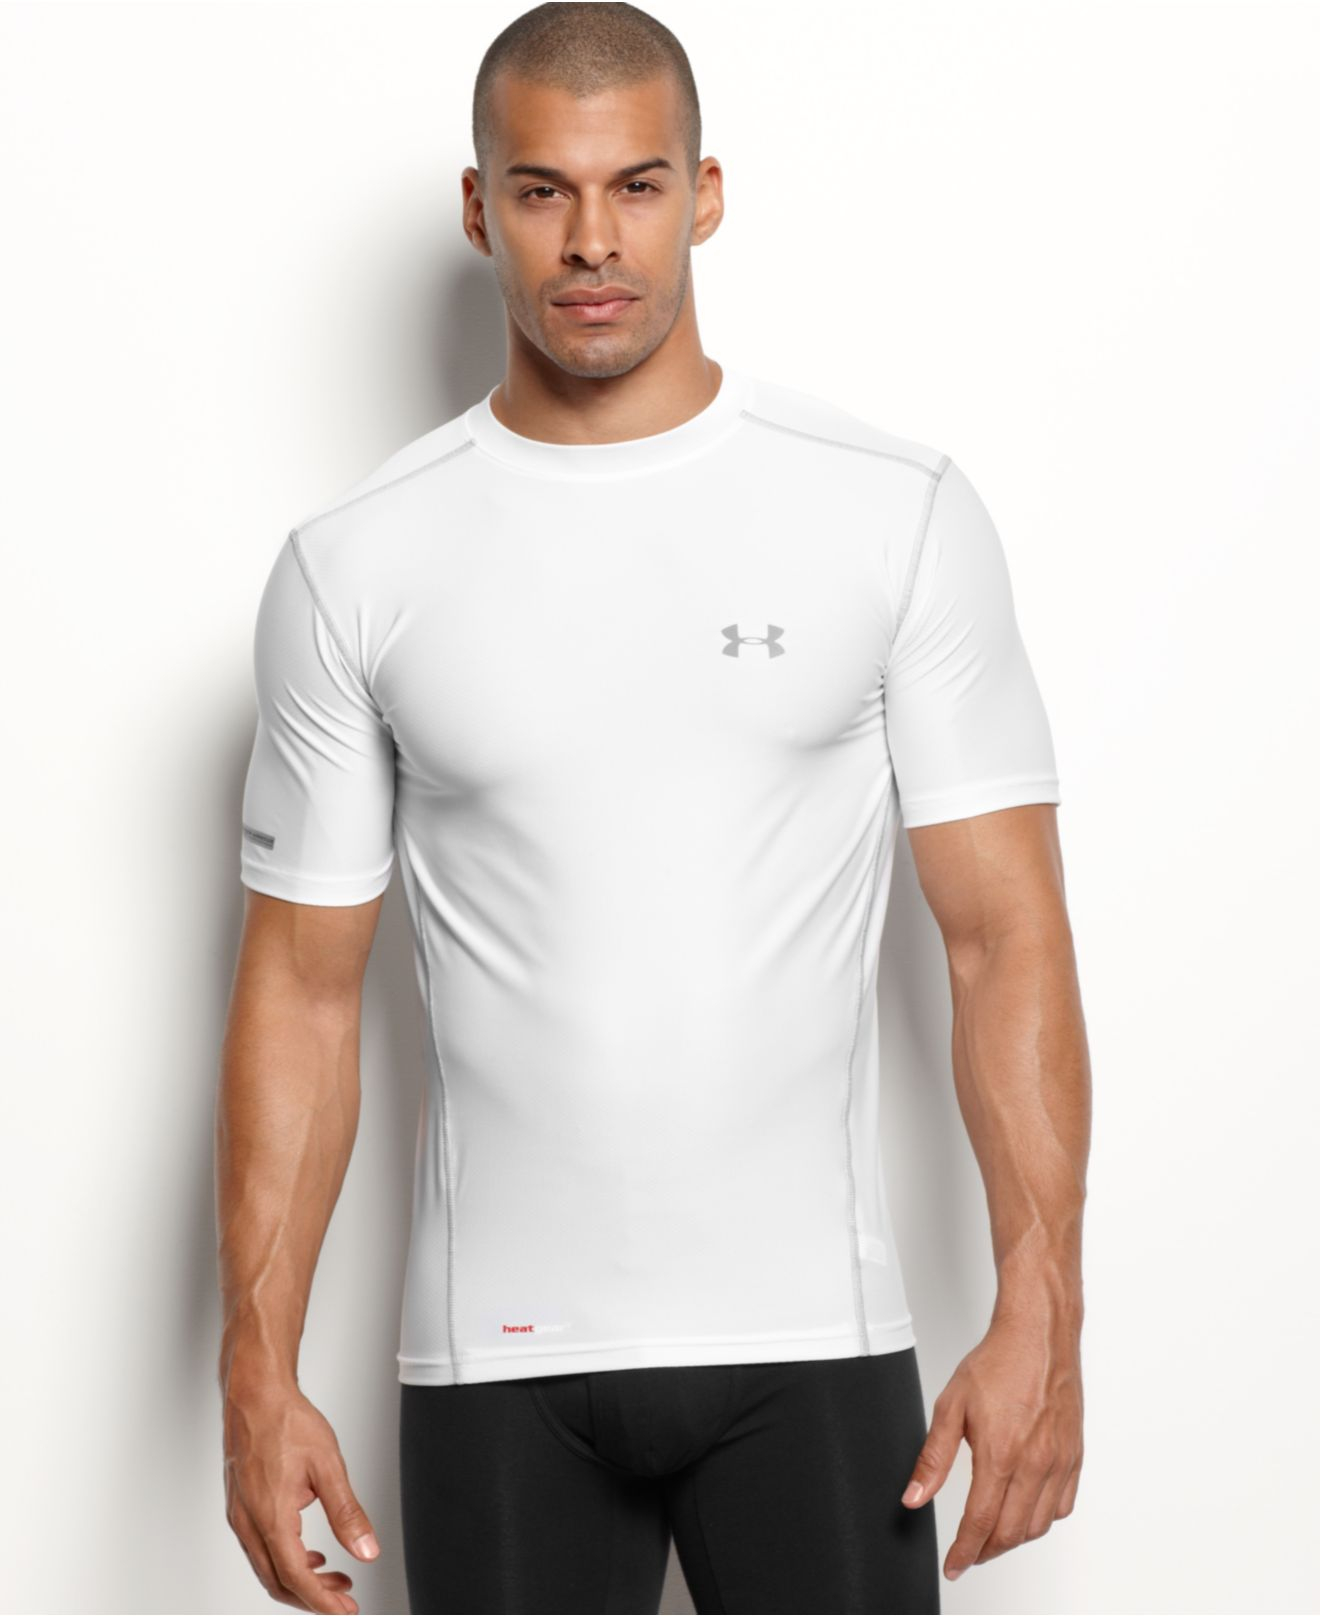 Under armour men 39 s athletic heatgear performance crew neck for Under armour heatgear white shirt